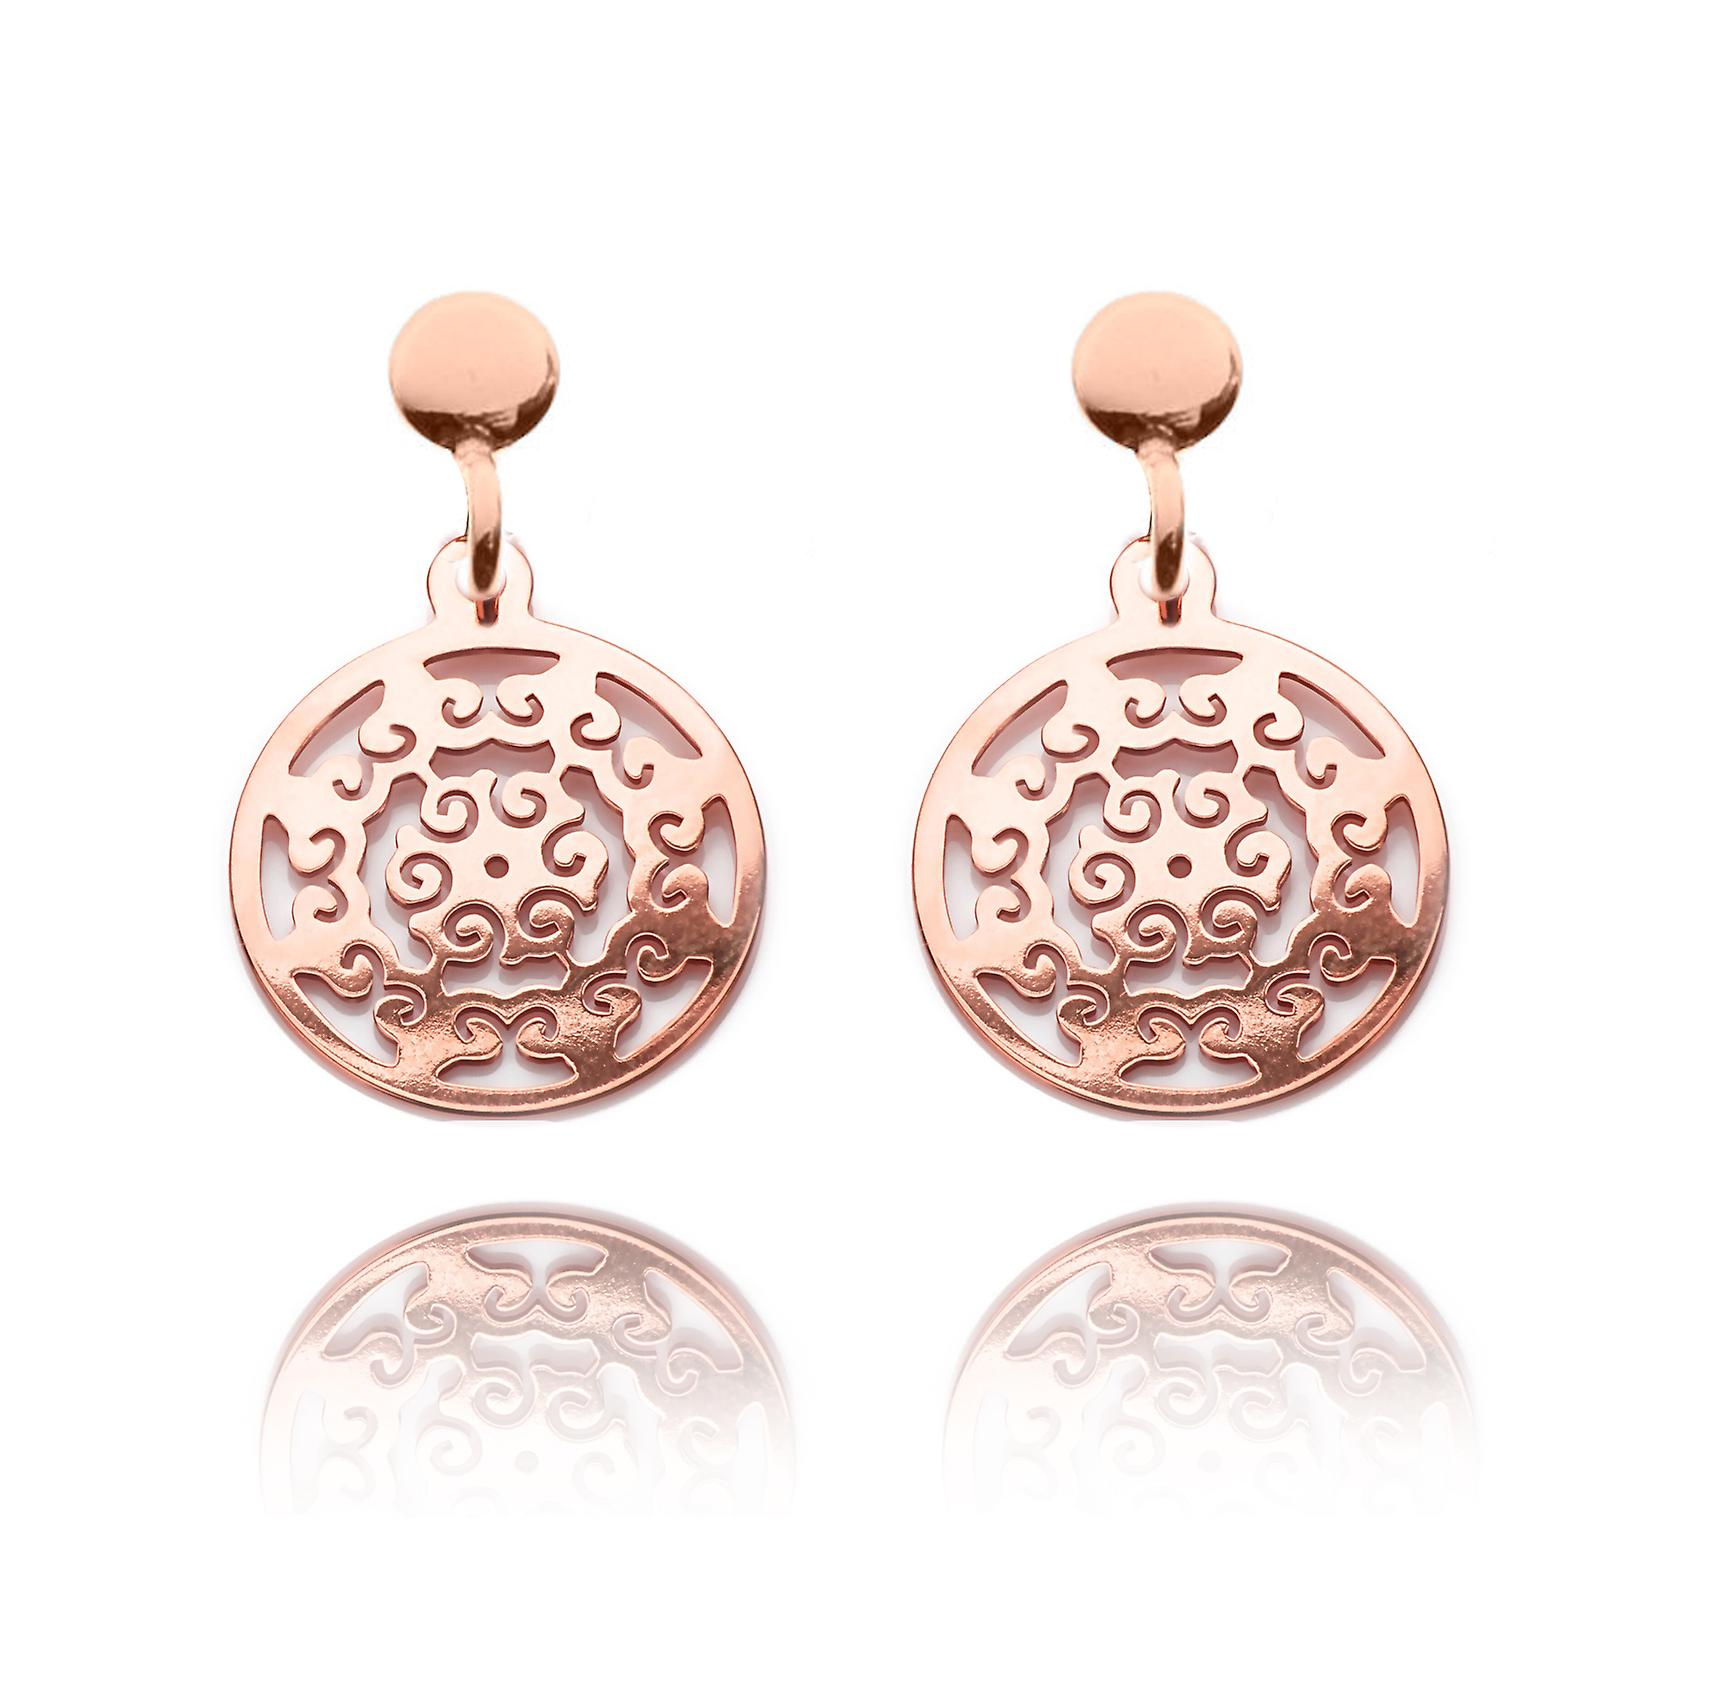 Ah! Jewellery 18K Rose Gold Over Sterling Silver Open Work Circle Earrings, Stamped 925